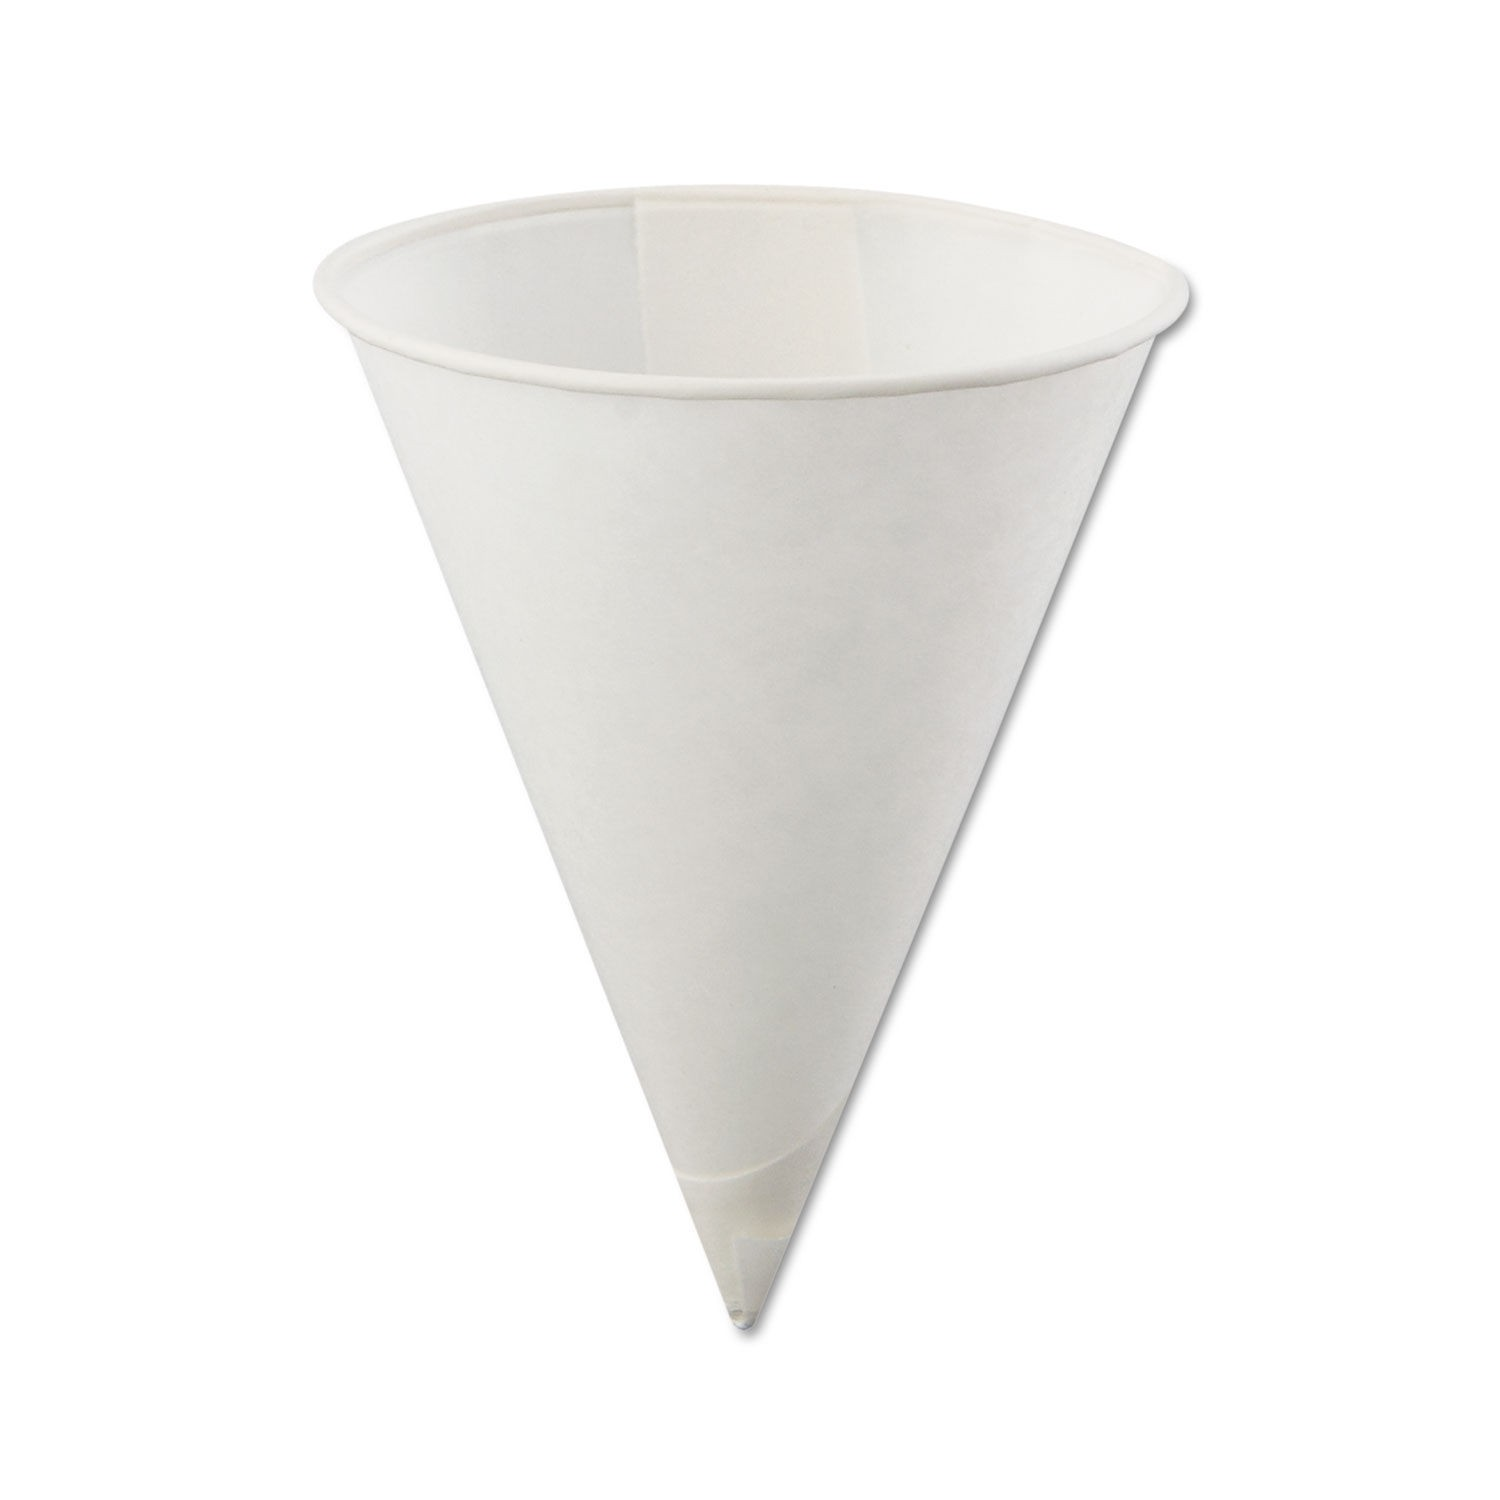 Konie Cups International Poly-Bag Rolled-Rim Paper Cone Cups, 4oz, White (Box of 5000)